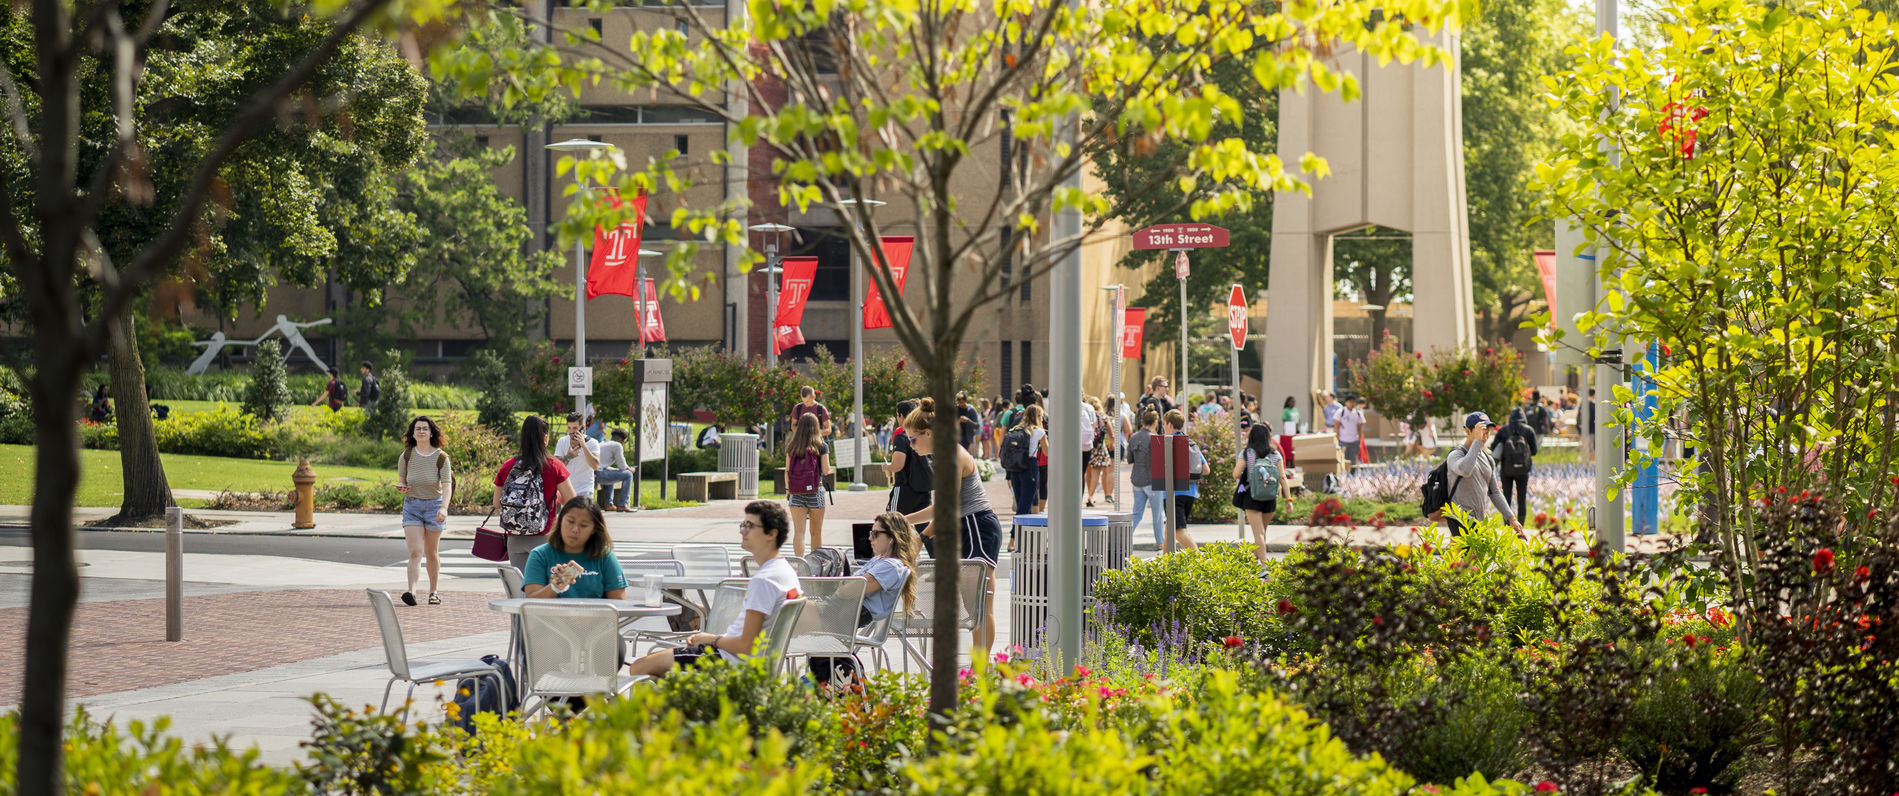 Temple University's campus in spring